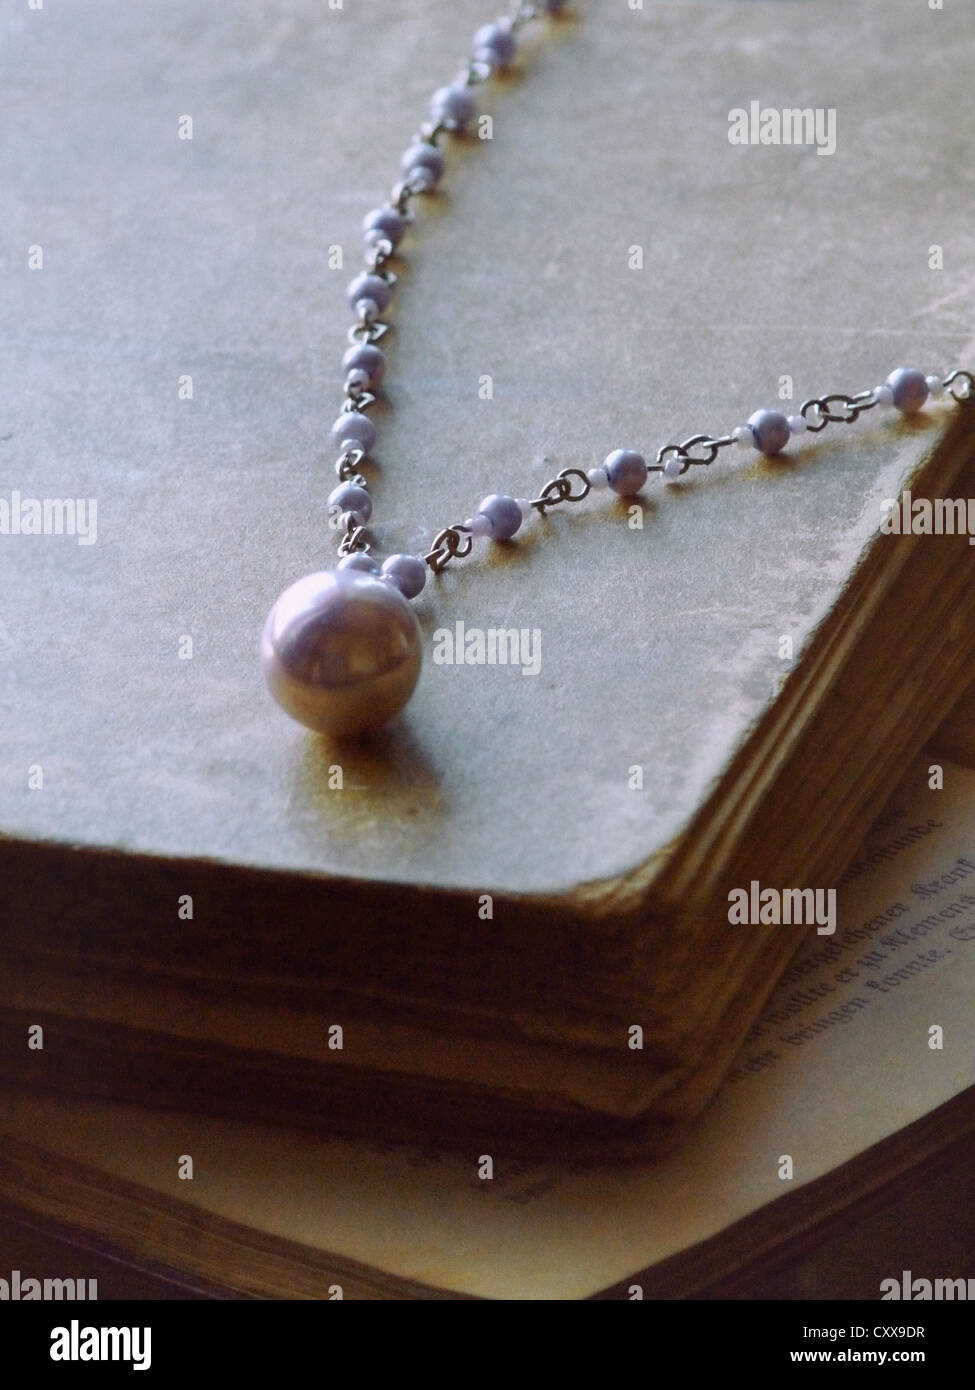 An old large violet pearl necklace laid on antique books. - Stock Image